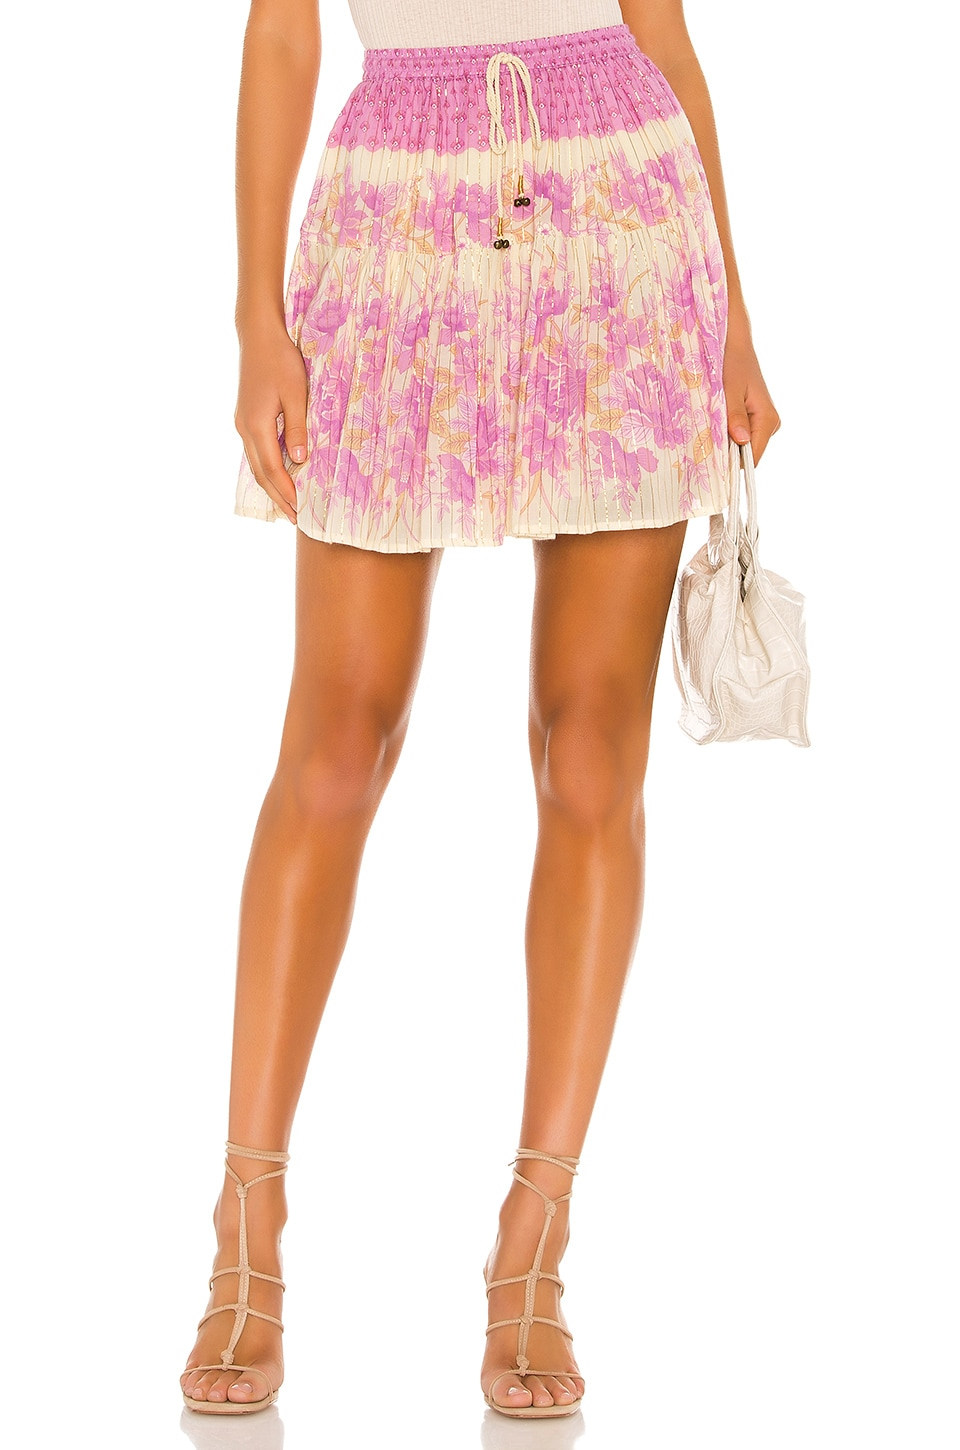 Spell & The Gypsy Collective x REVOLVE Coco Lei Mini Skirt in Lilac